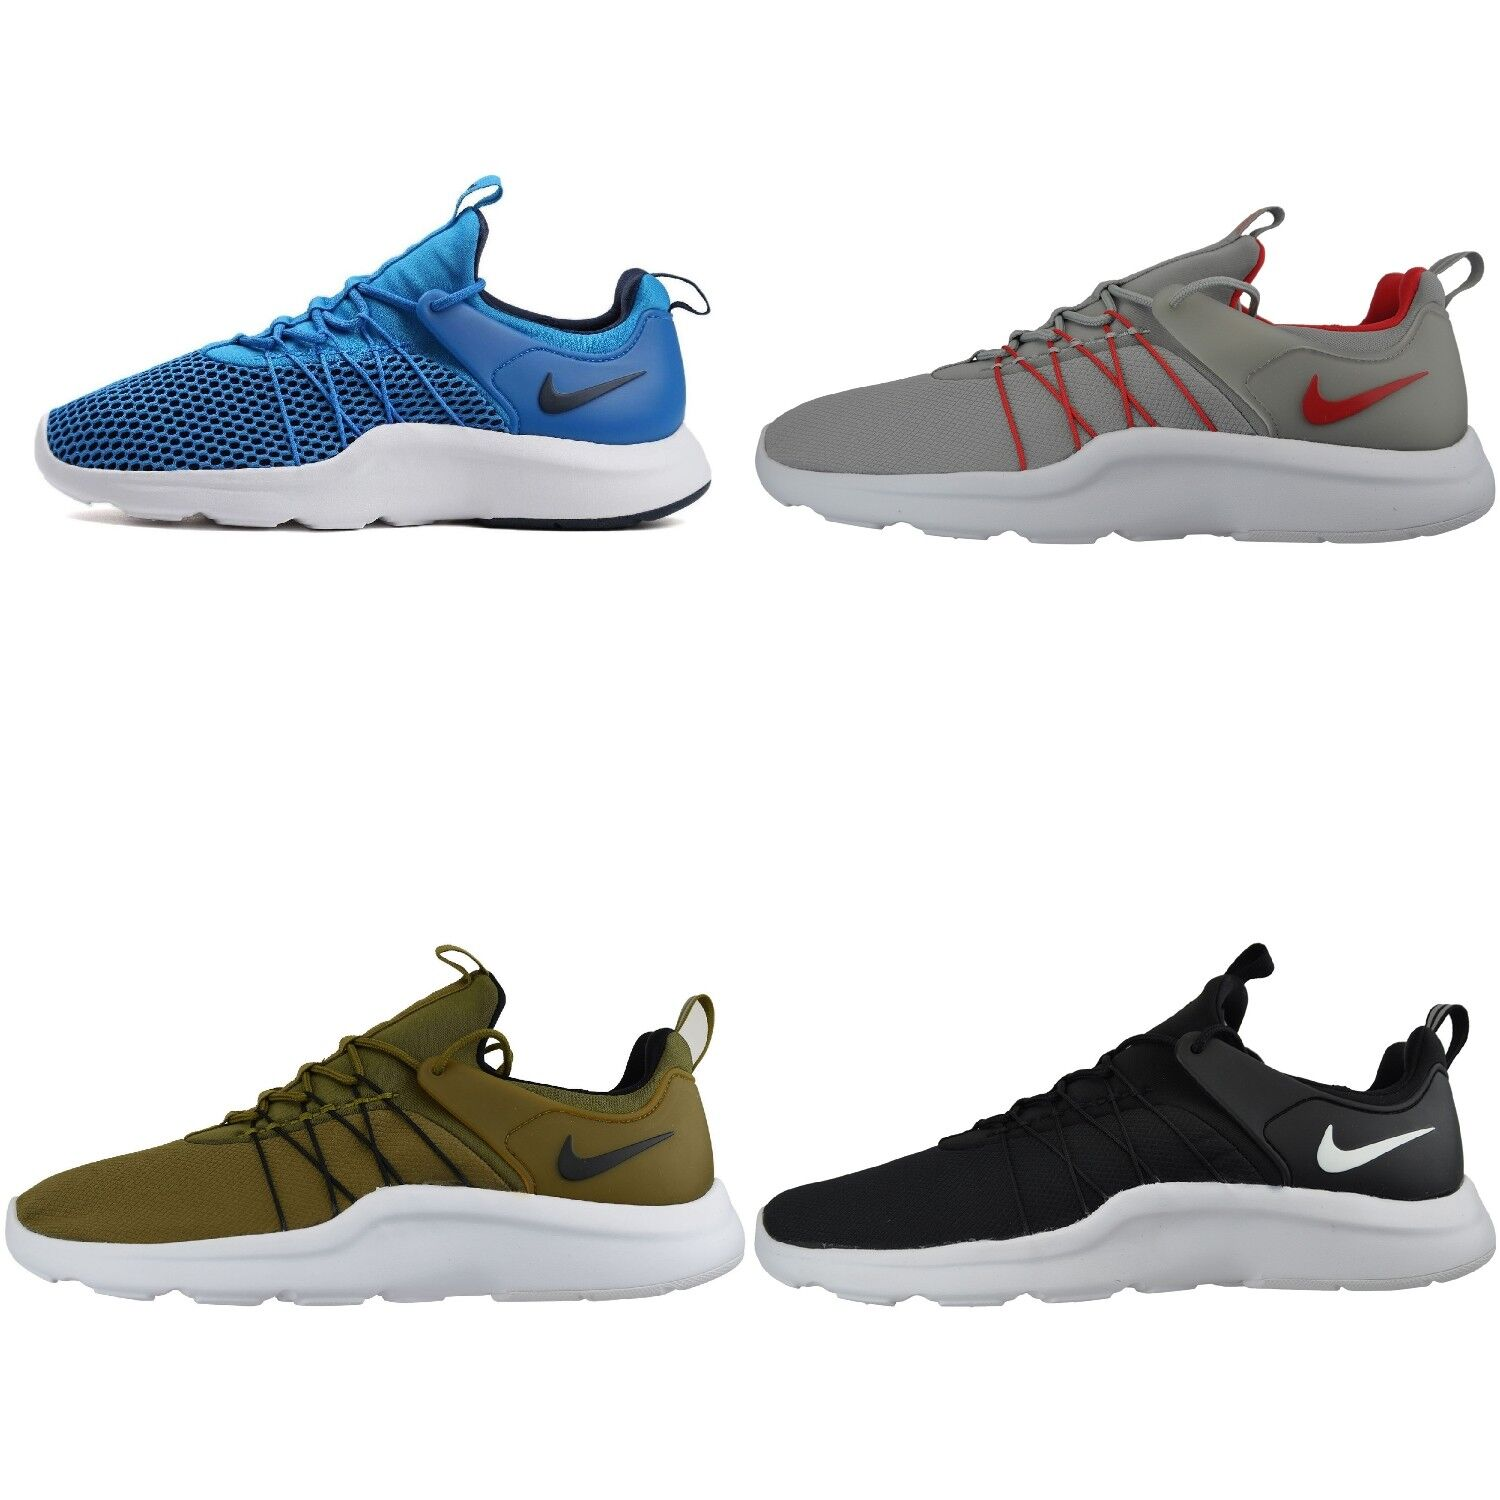 NIKE DARWIN RUNNING SHOES TRAINERS Trainers Textile